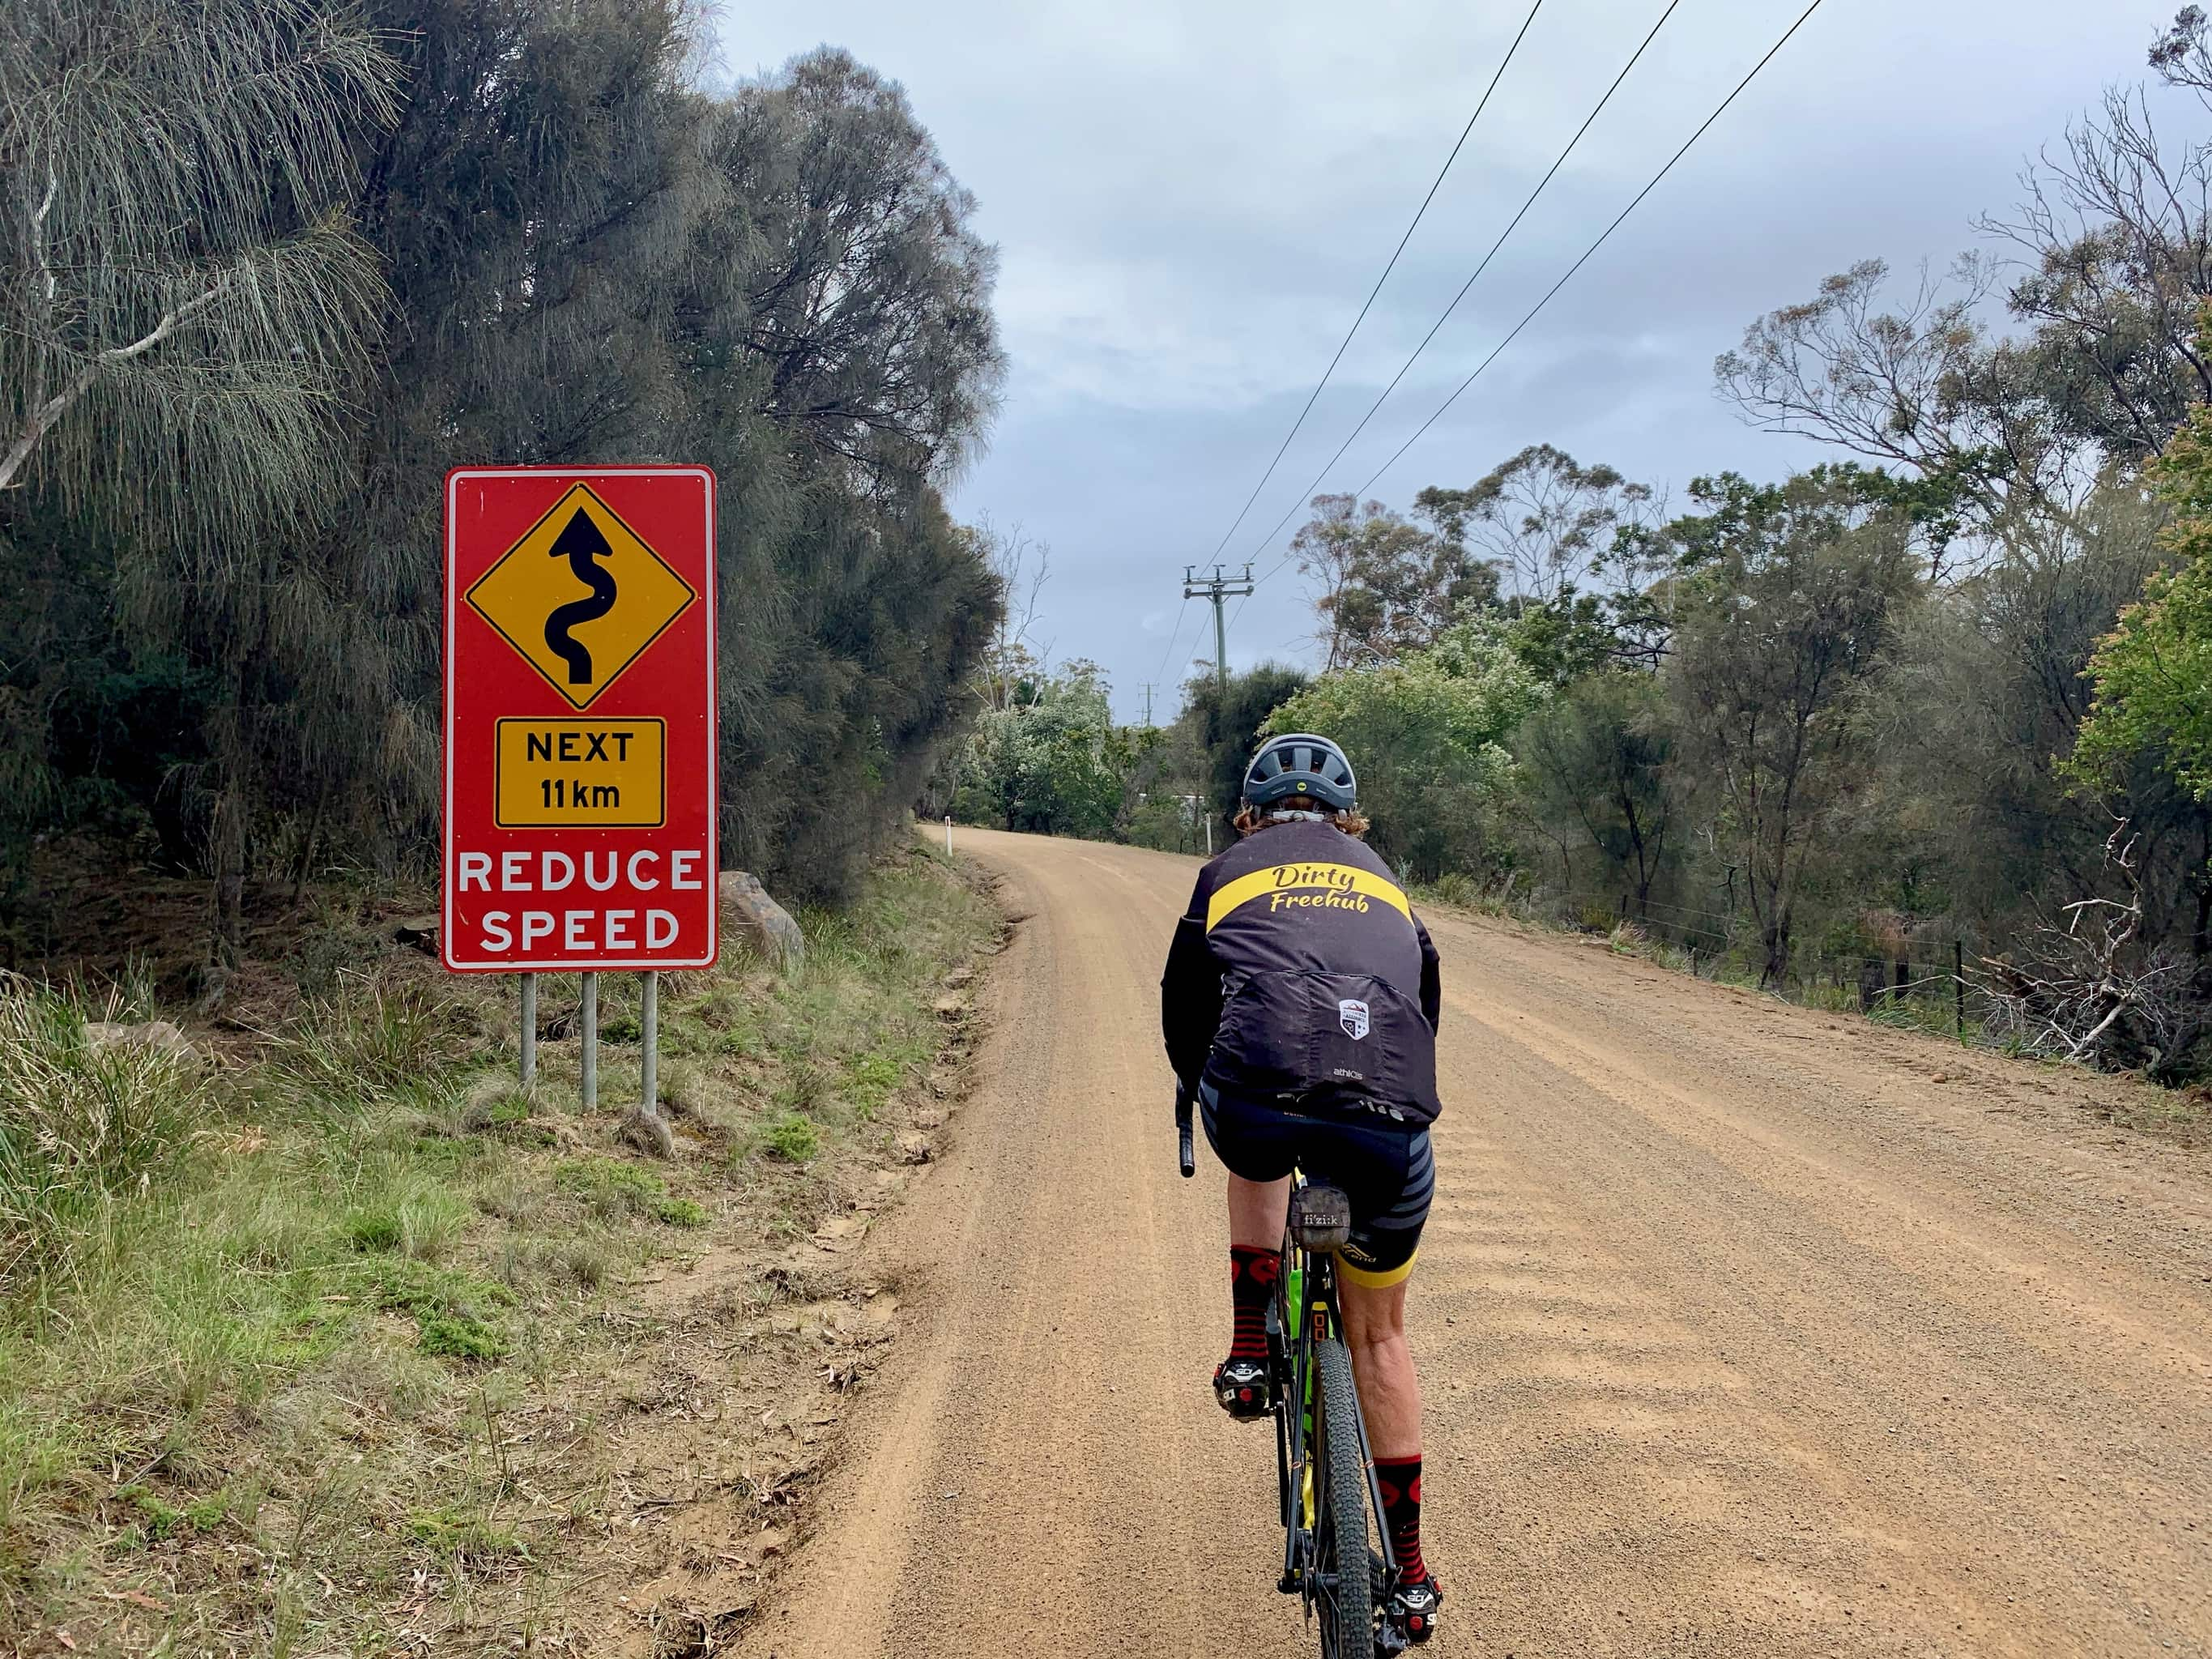 Bike rider on gravel road with road sign that cautions winding road.